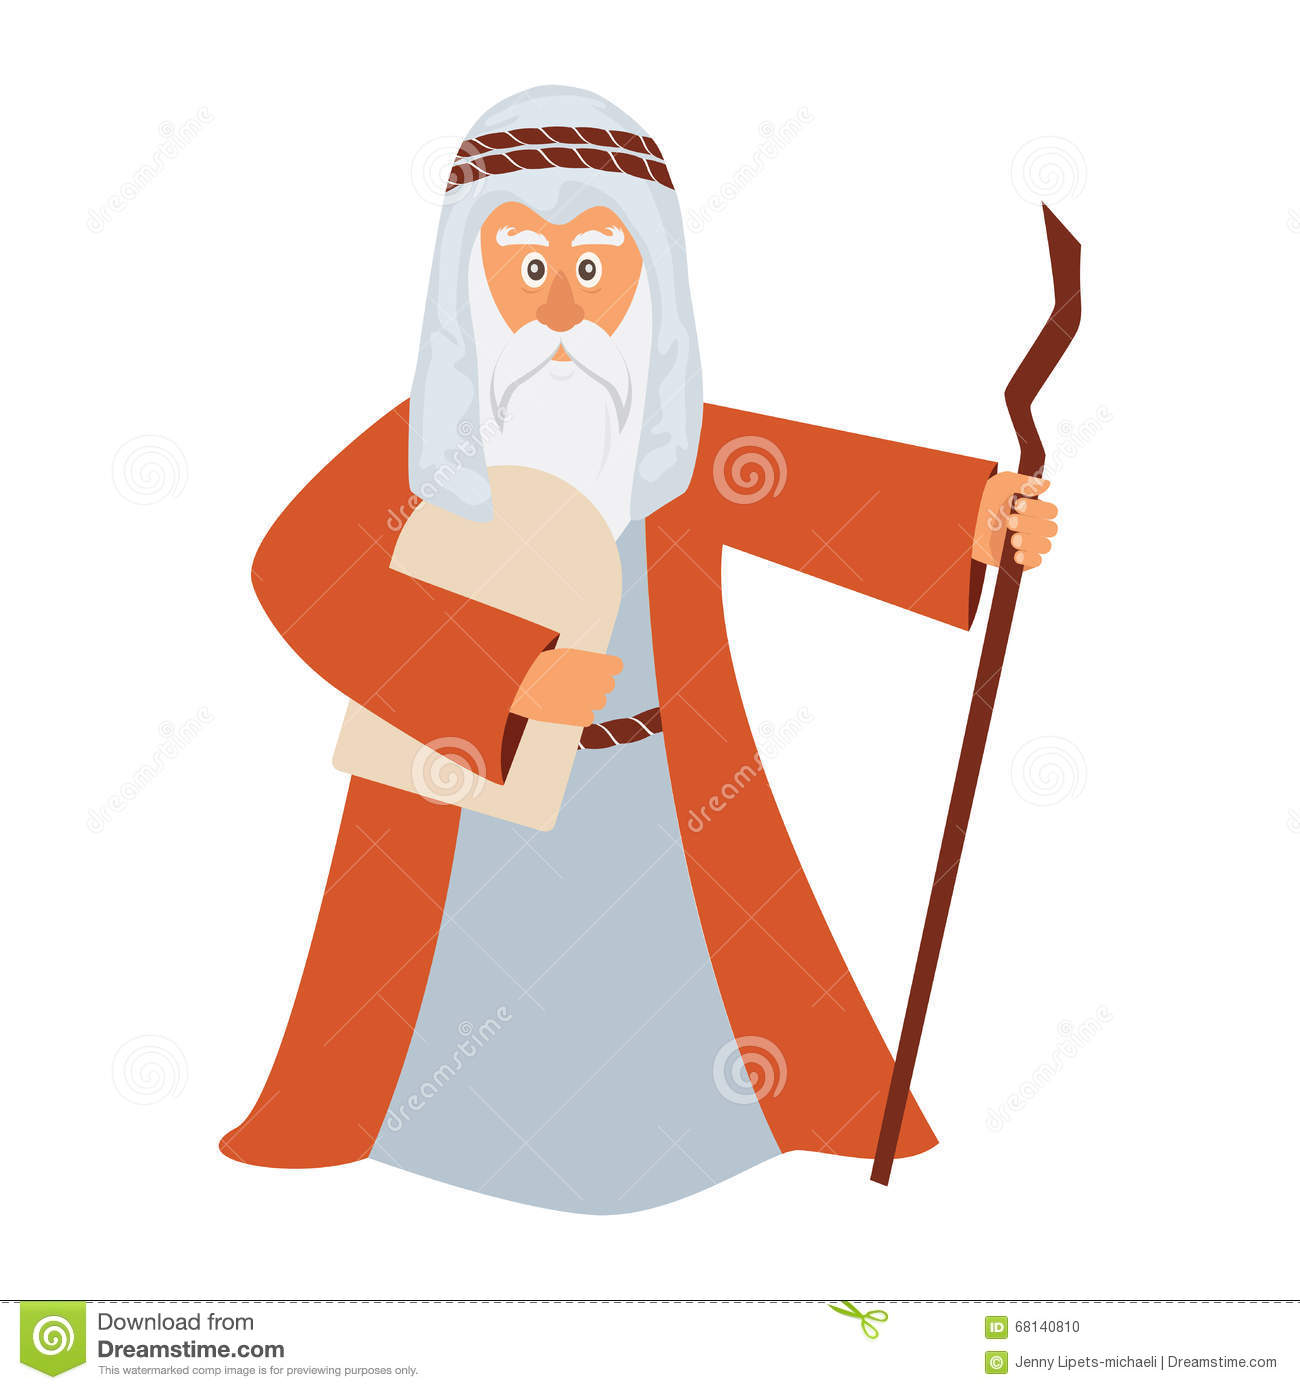 Moses From Bible For Passover Stock Vector - Image: 39067665